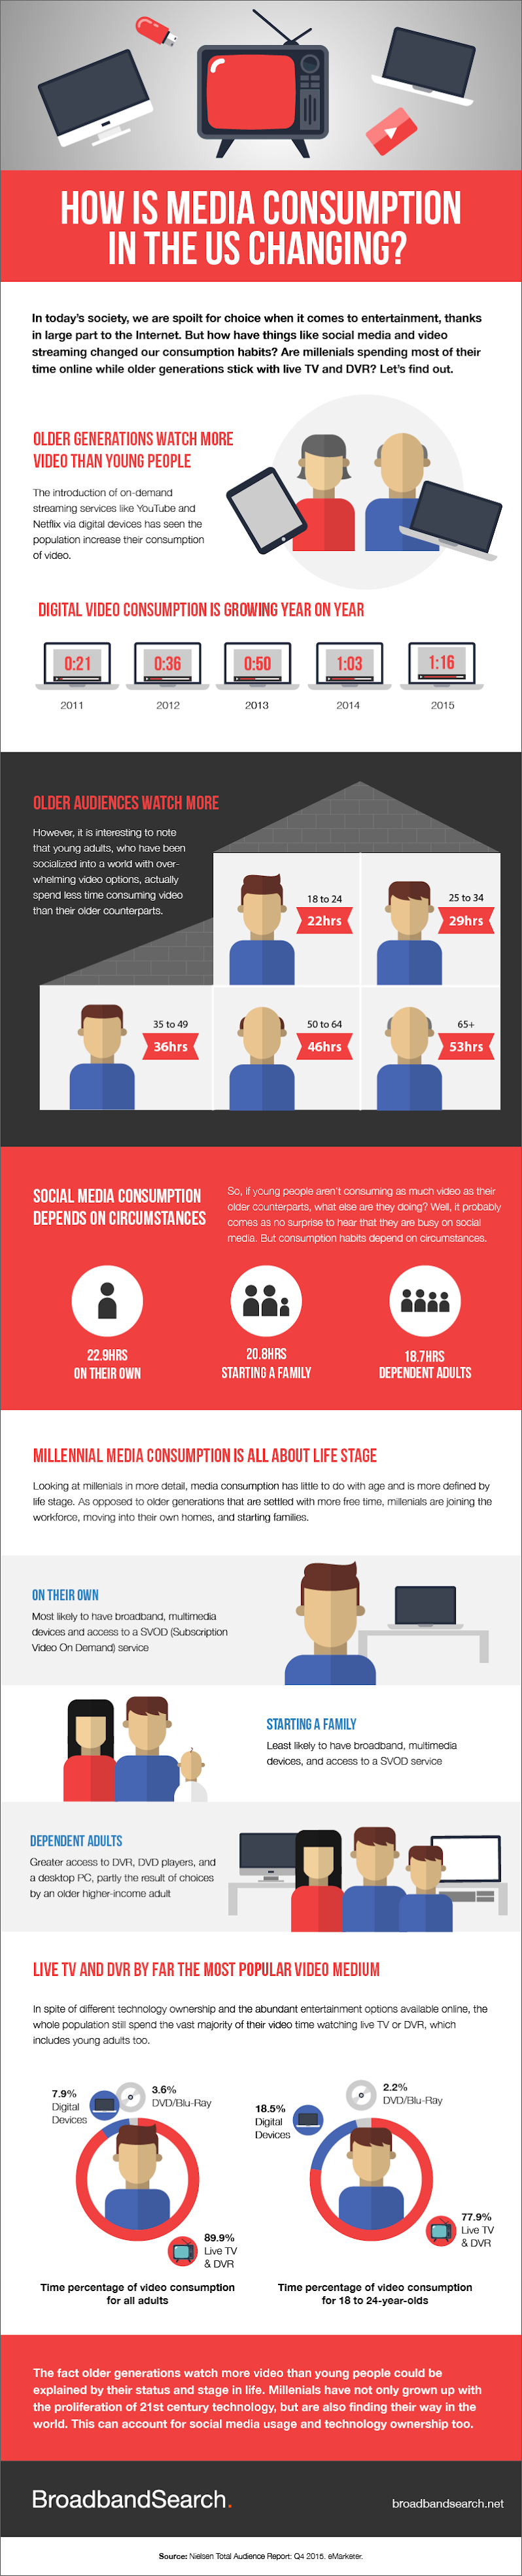 How is Media Consumption in the US Changing? #infographic